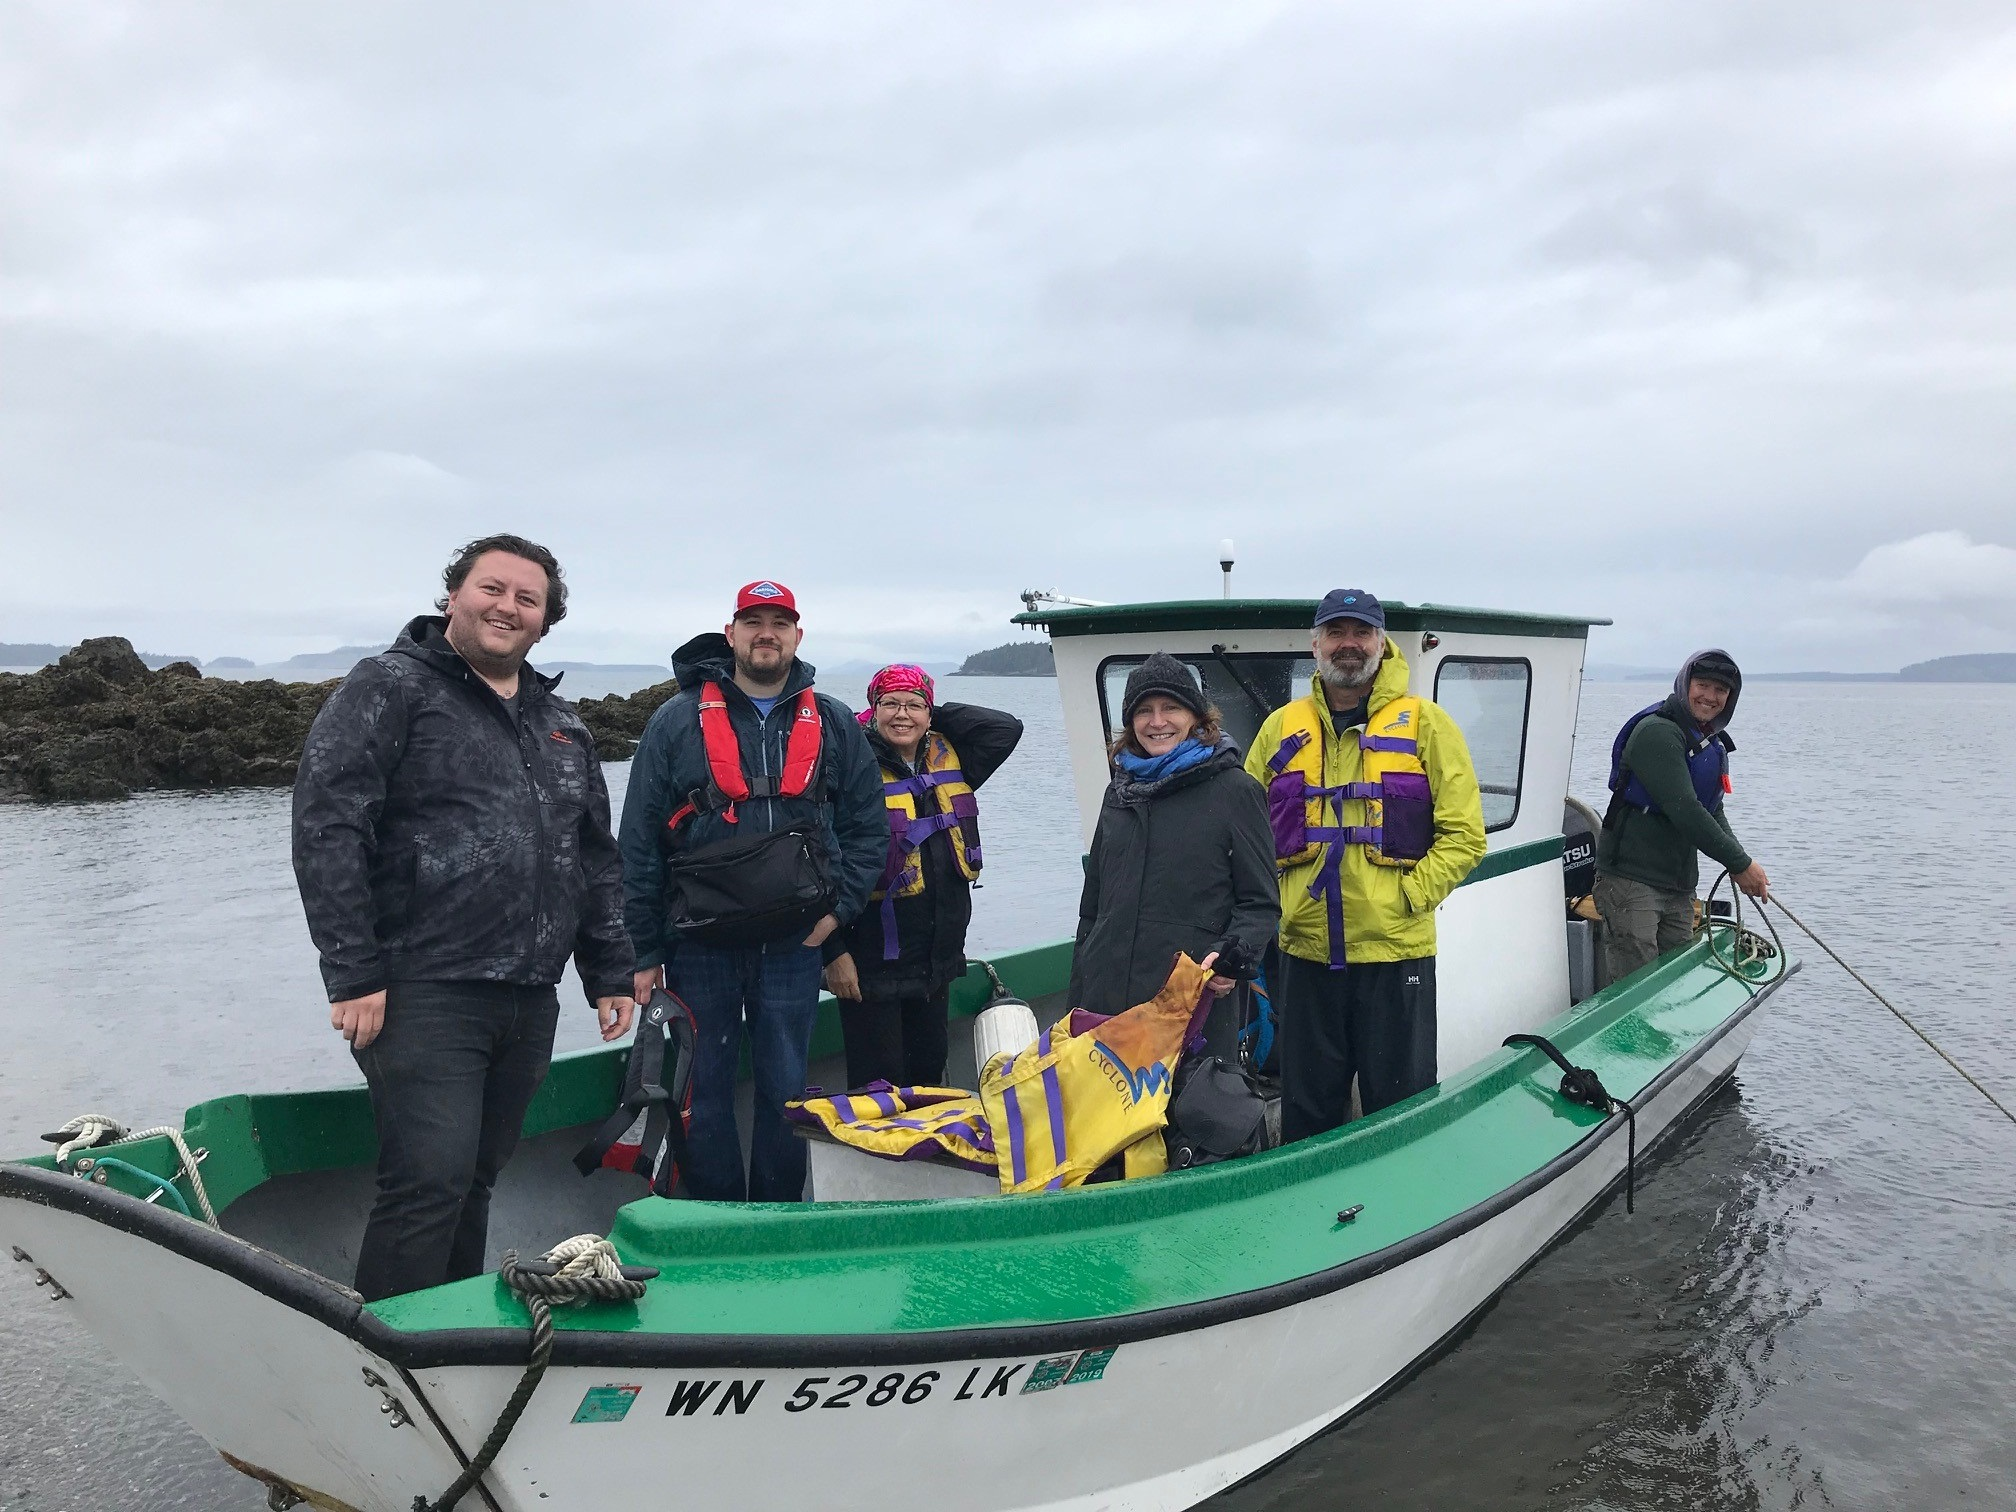 Tulalip tribal members and TNC staff head to the island.